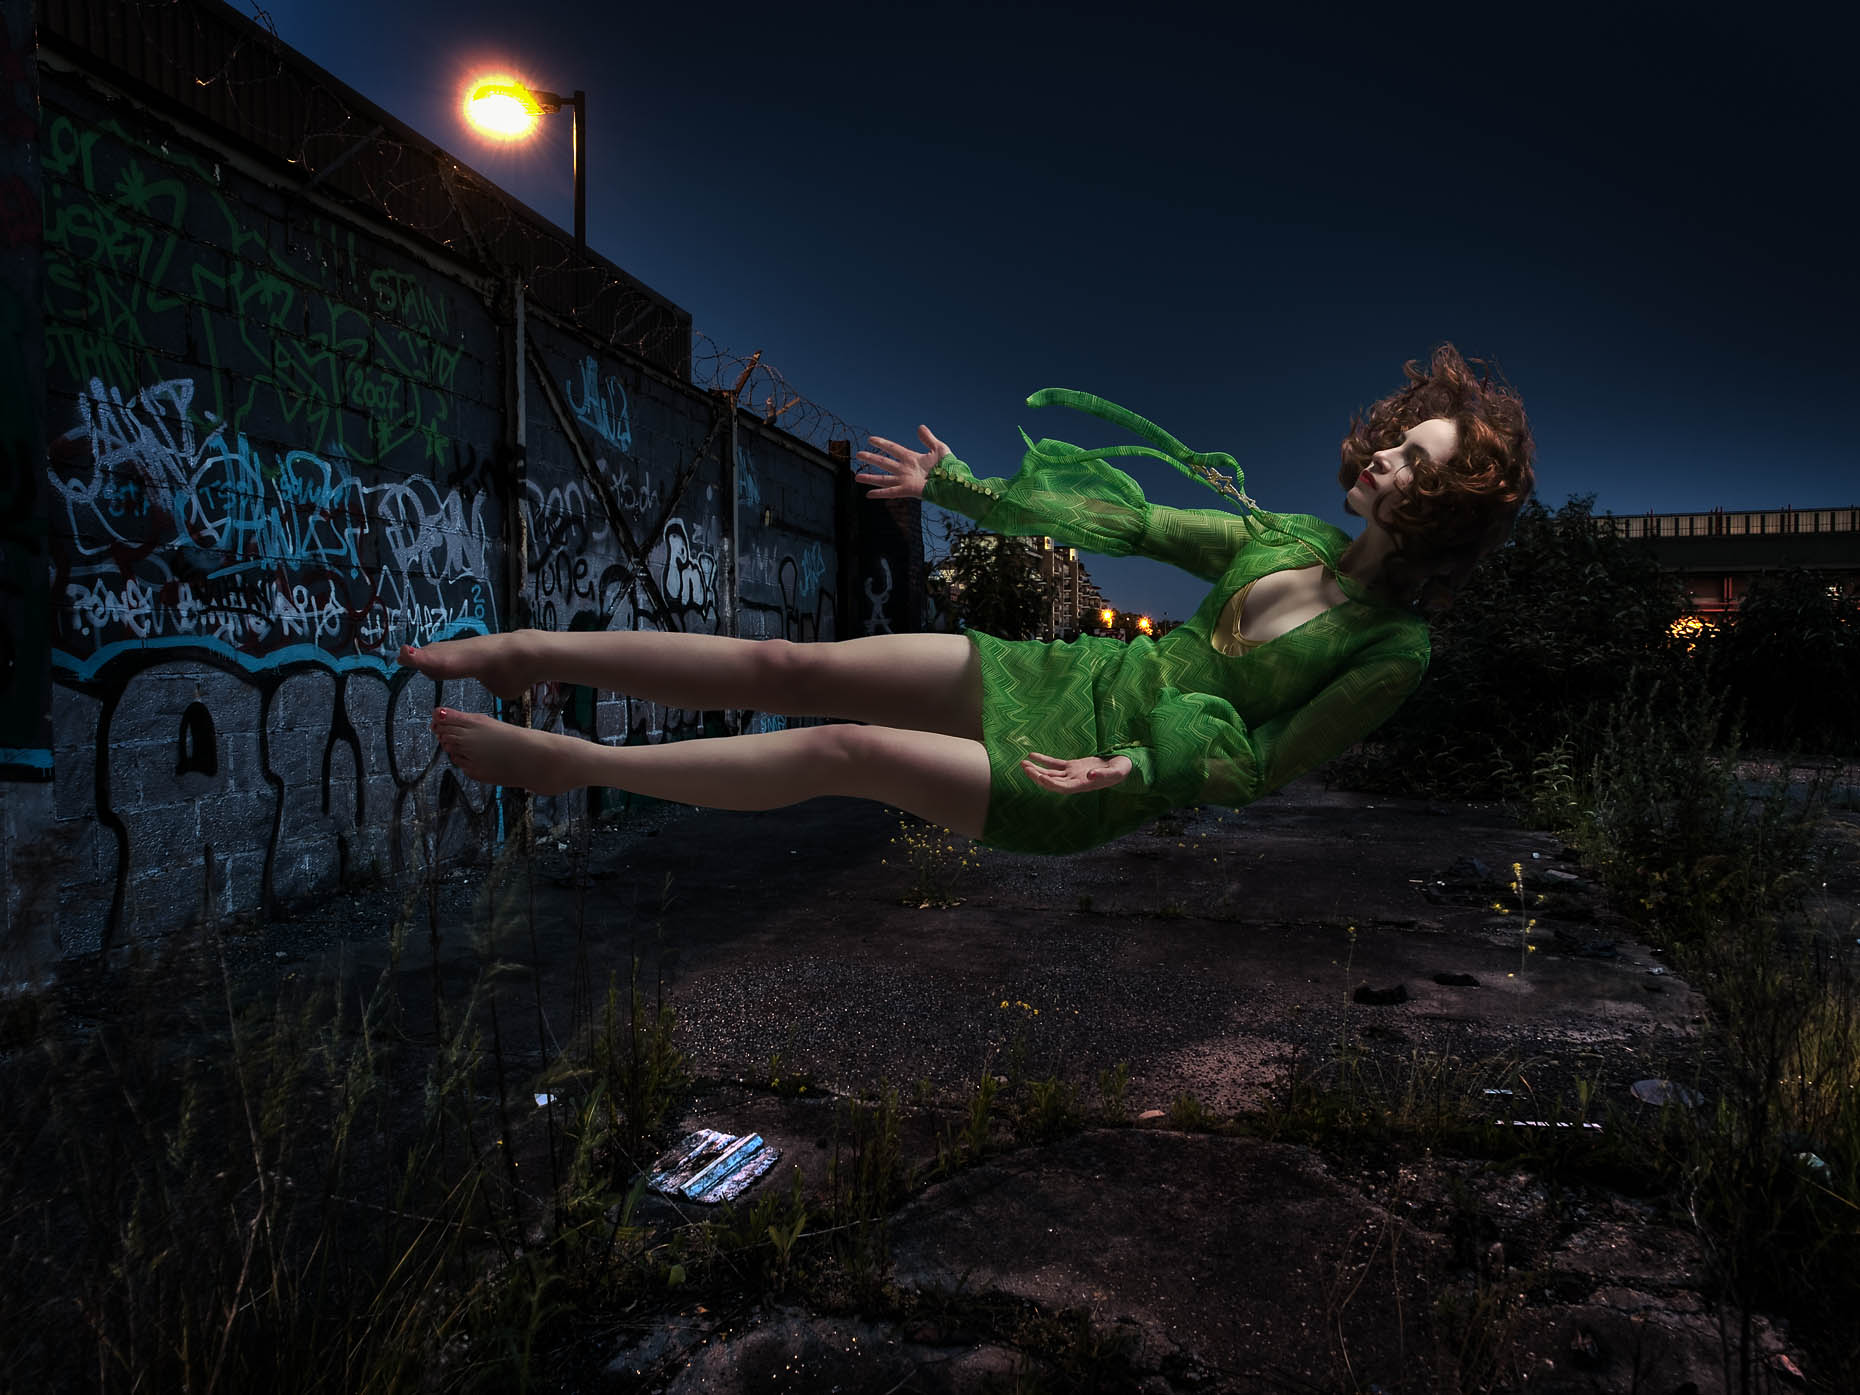 fashion-photograph-of-girl-floating-green-dress